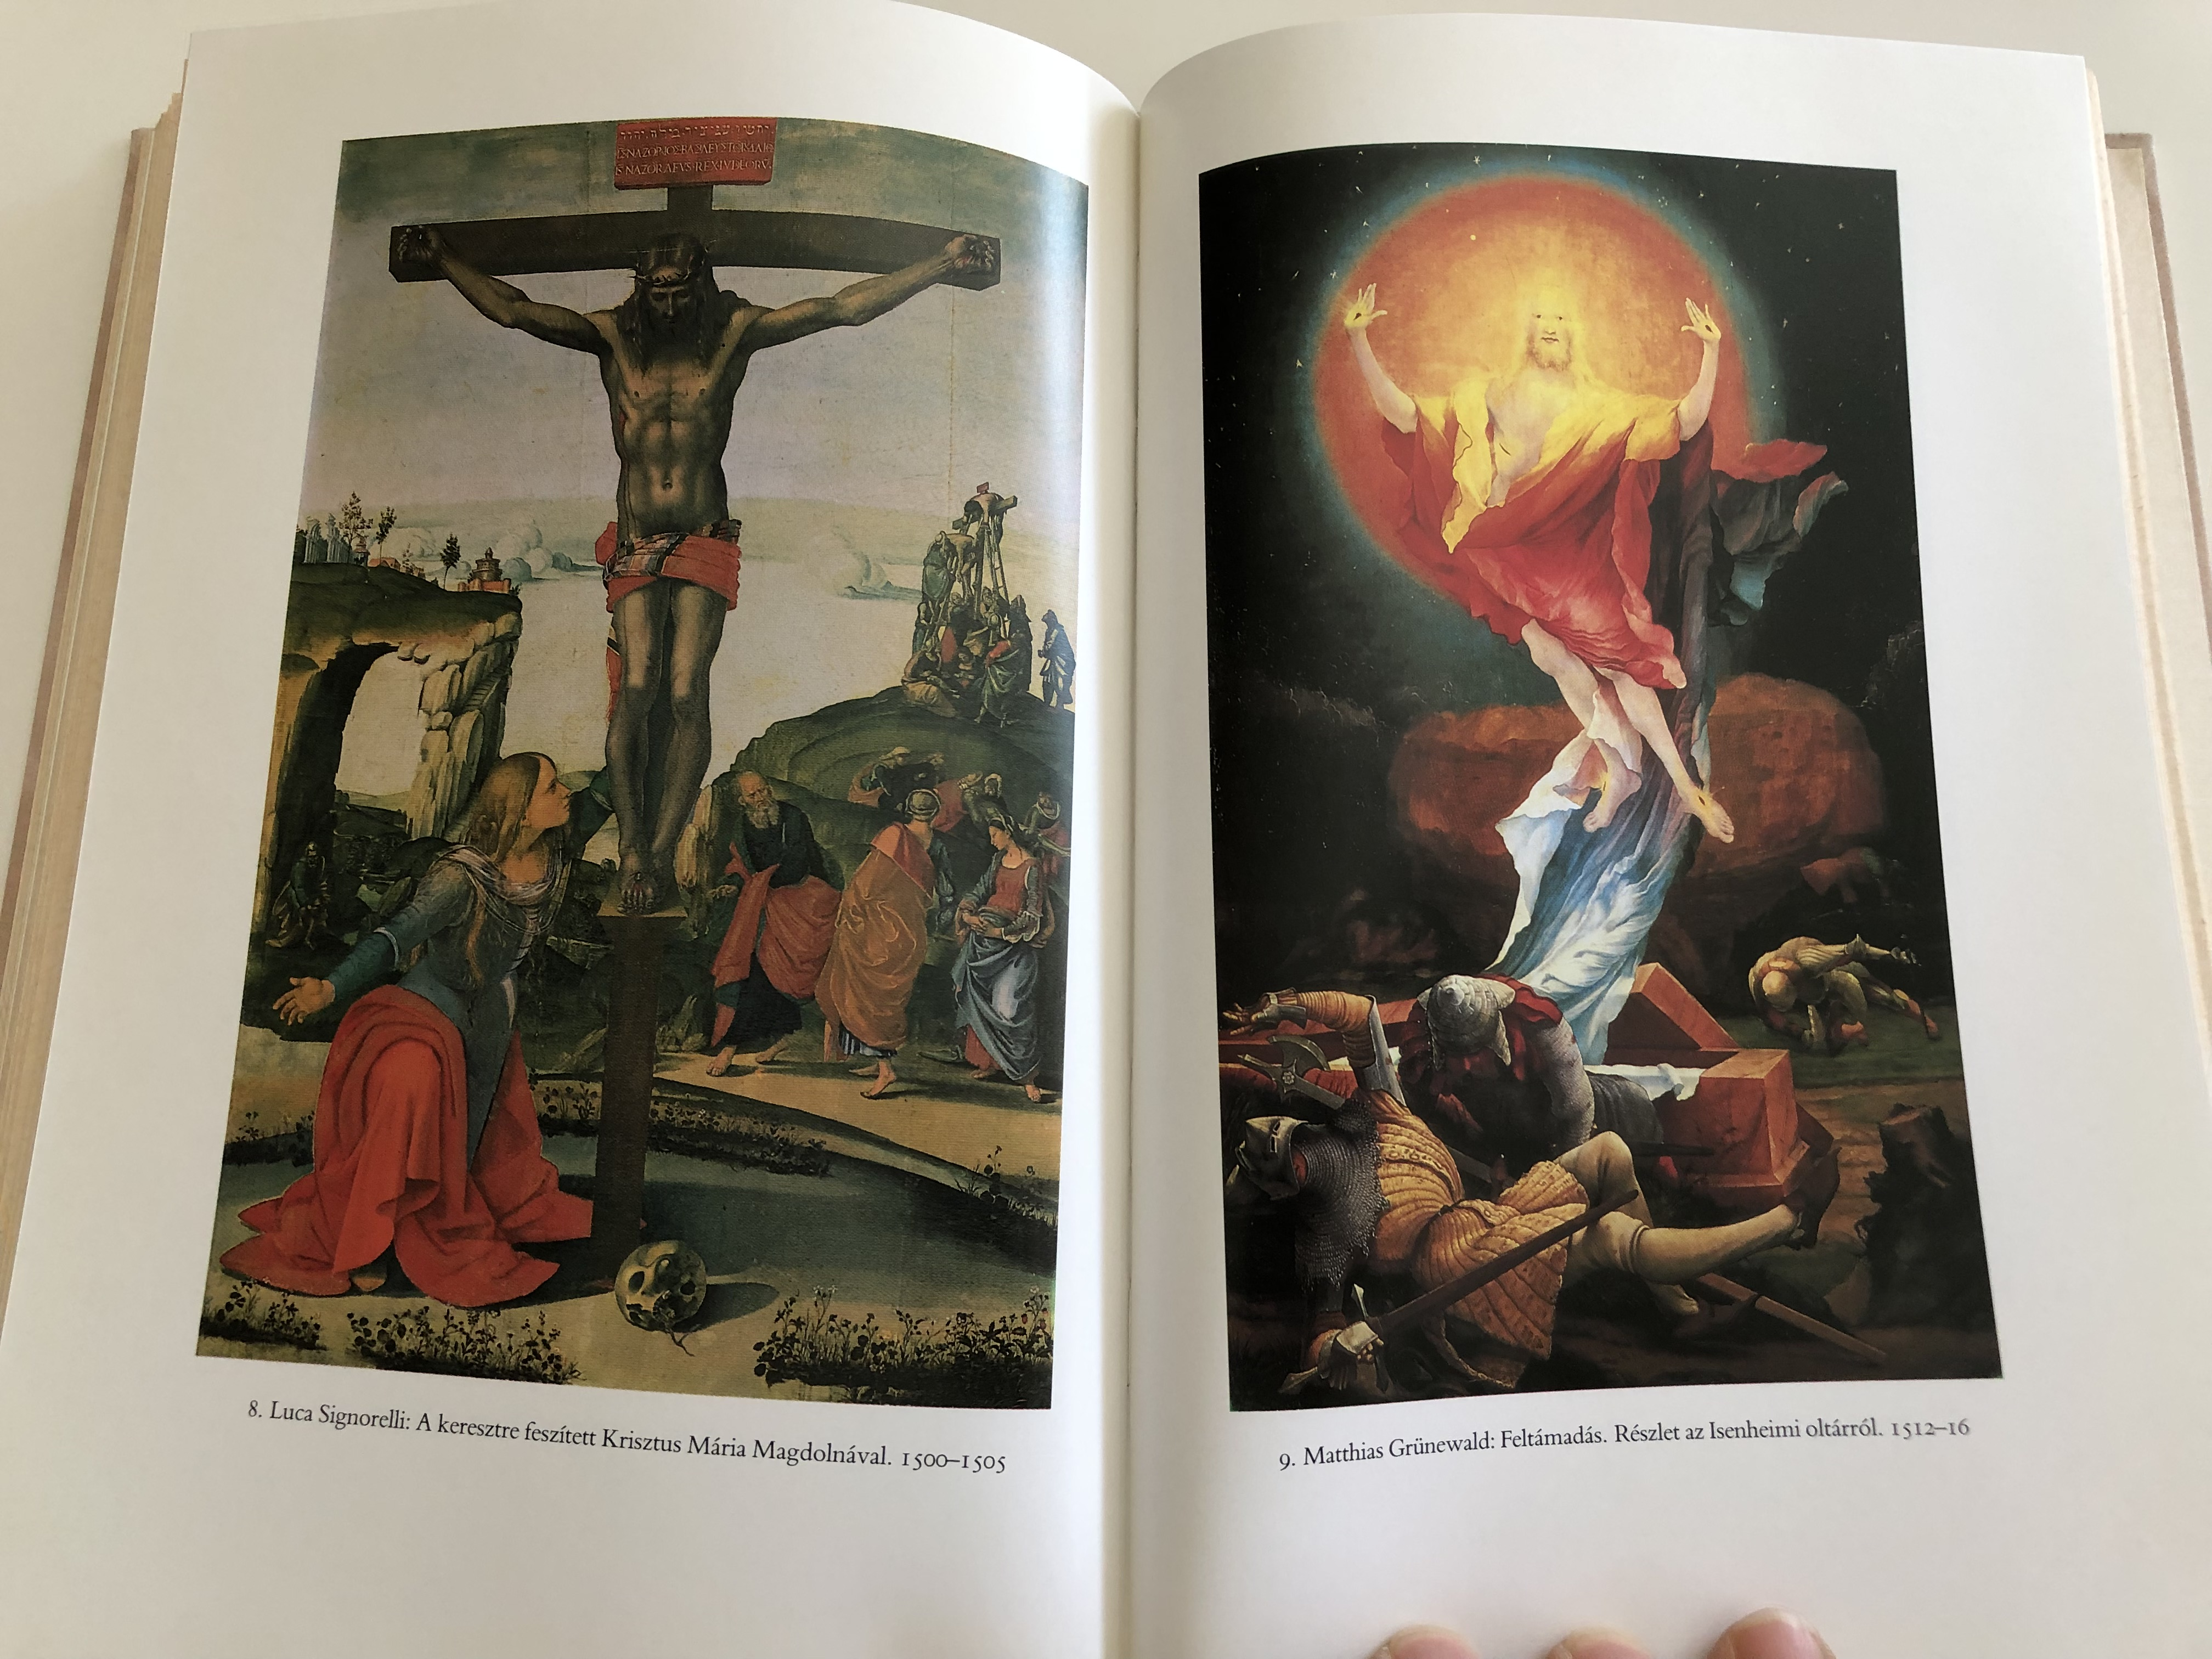 amor-sanctus-medieval-hymns-in-latin-and-hungarian-szent-szeretet-k-nyve-translated-and-interpreted-by-babits-mih-ly-k-z-pkori-himnuszok-latinul-s-magyarul-hardcover-1988-helikon-he213-15-.jpg